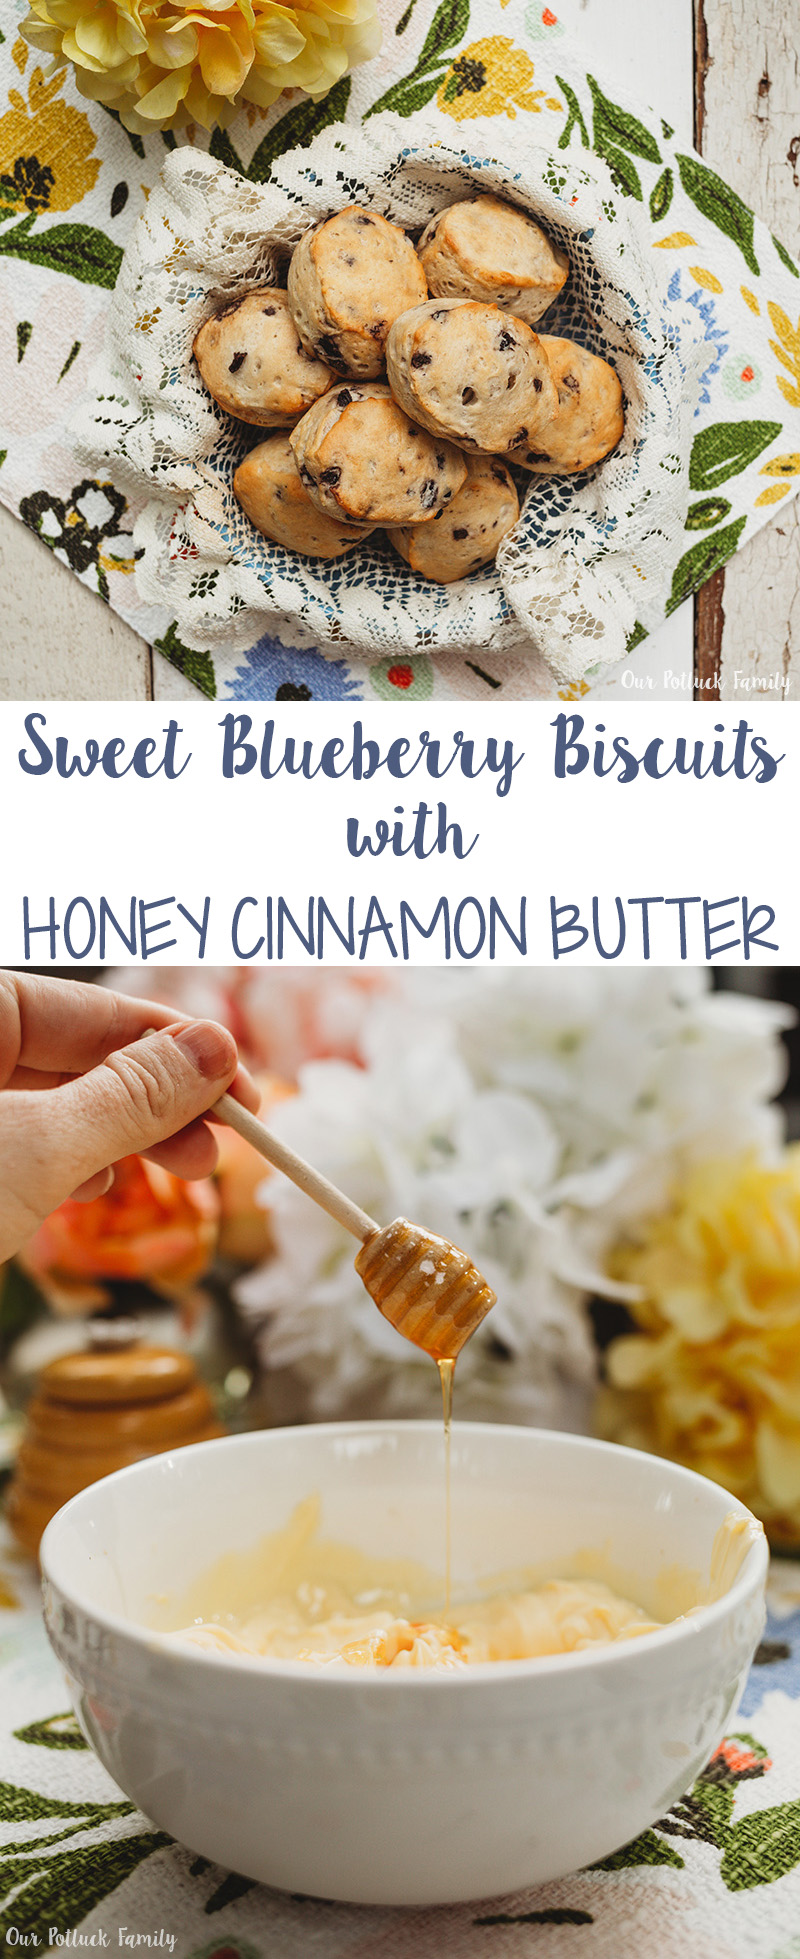 Sweet Blueberry Biscuits with Honey Cinnamon Butter